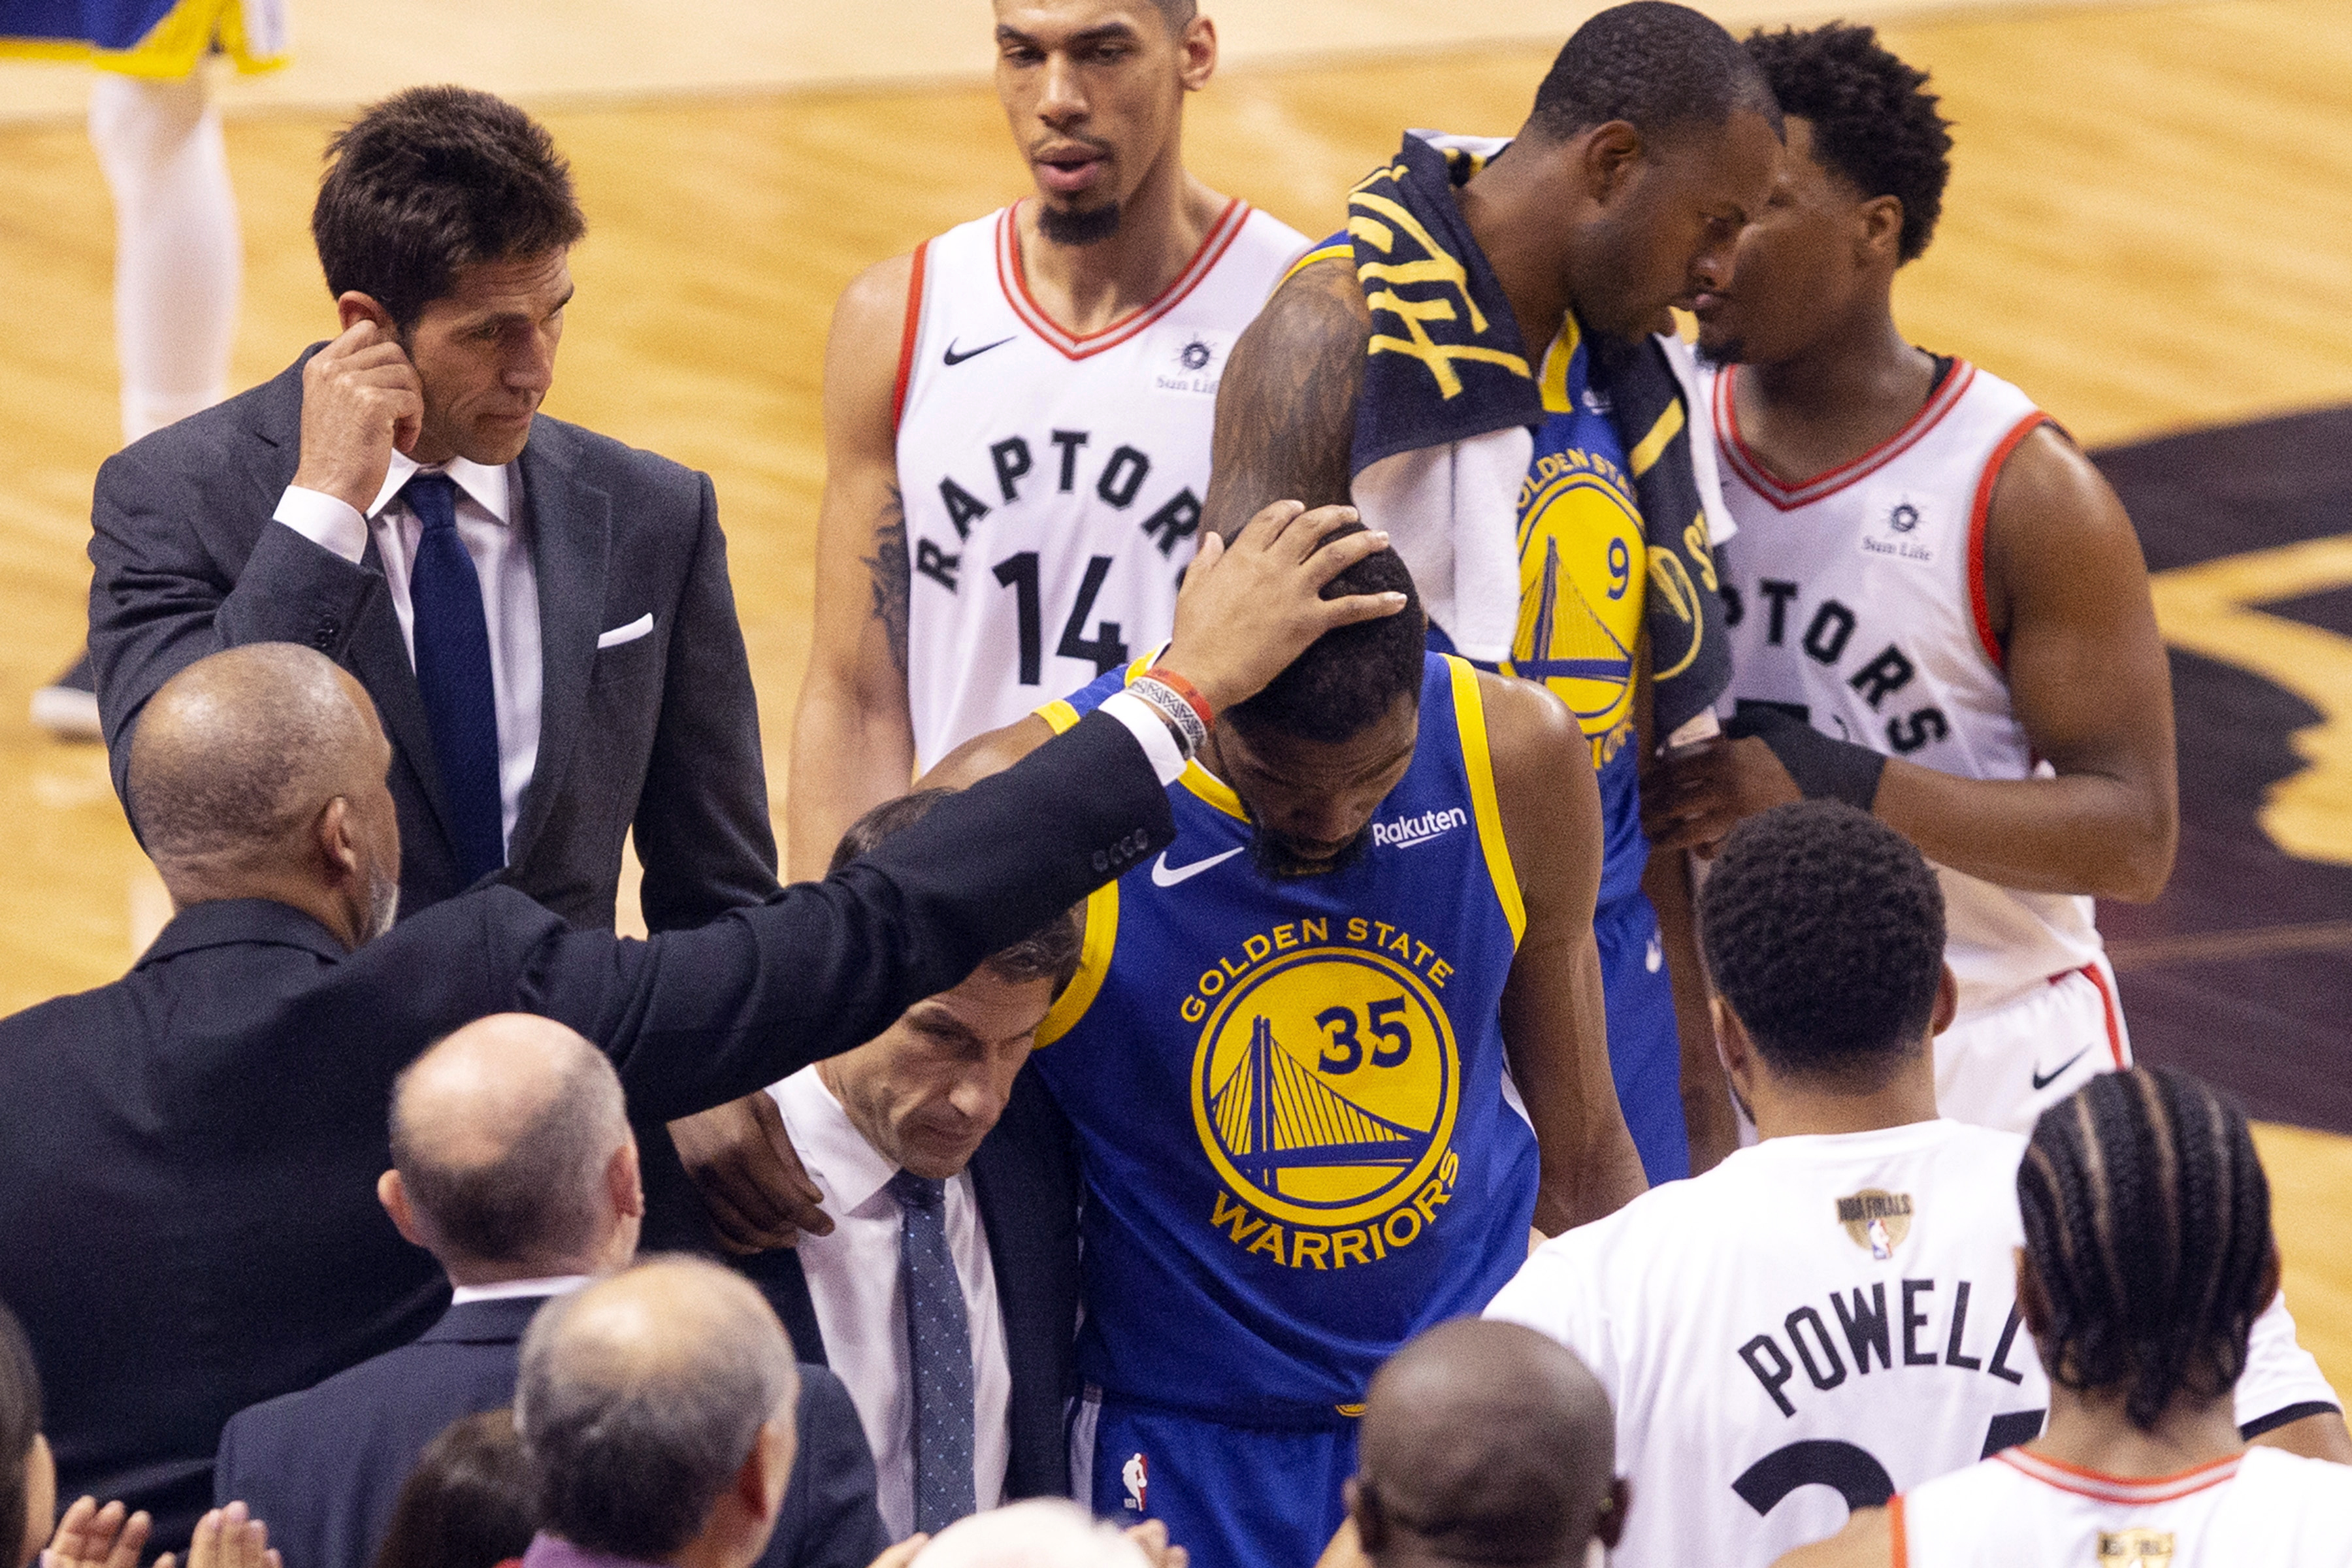 Golden State Warriors forward Kevin Durant (35) is consoled as he walks off the court after sustaining an injury during first half basketball action in Game 5 of the NBA Finals in Toronto on Monday, June 10, 2019. (Chris Young/The Canadian Press via AP)